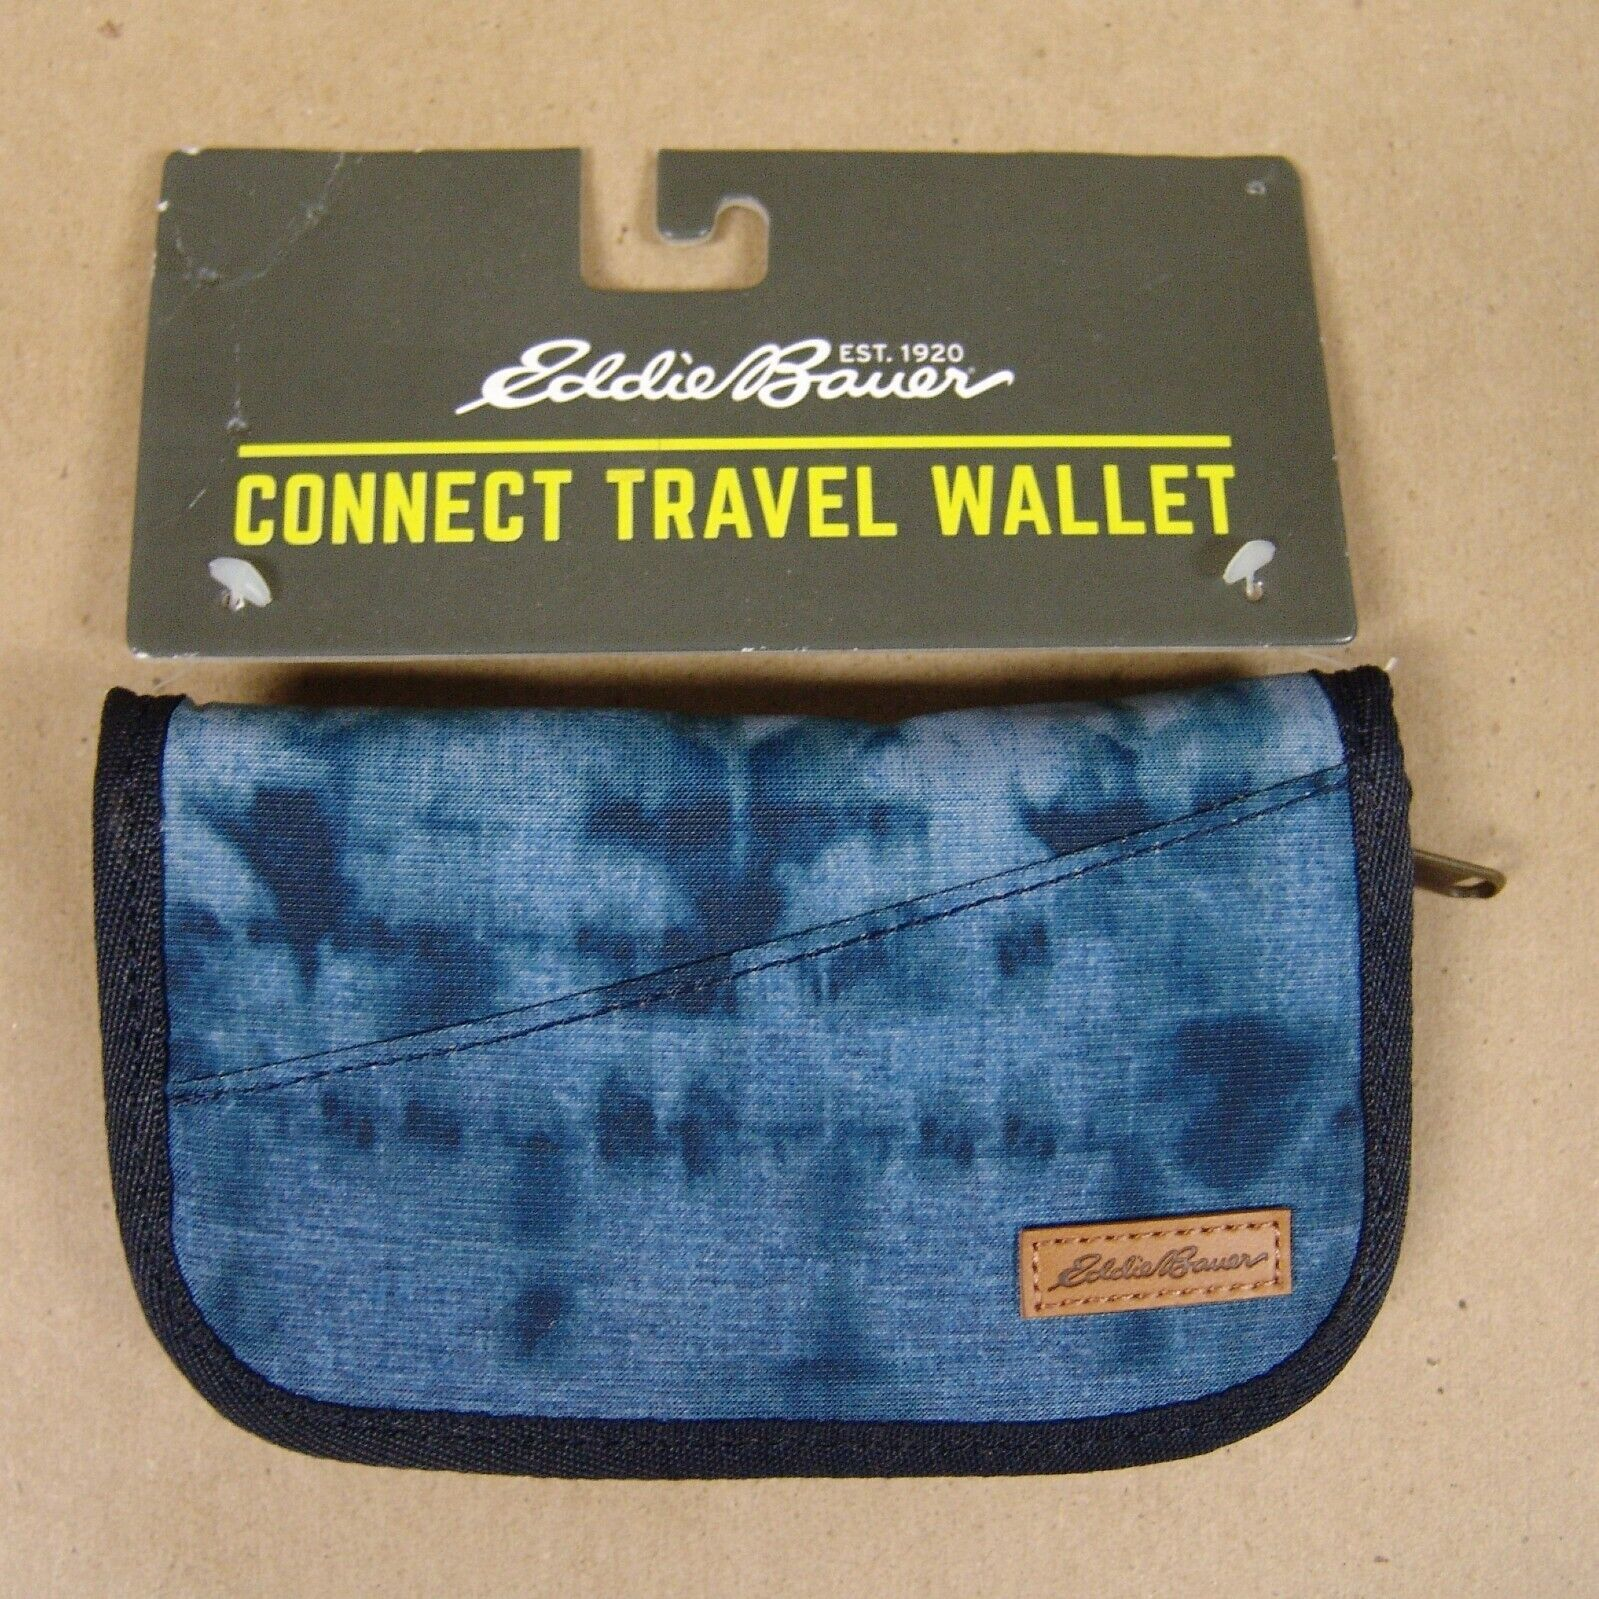 Eddie Bauer CONNECT TRAVEL WALLET - Atlantic Blue - Zippered - Removable Strap - $4.99